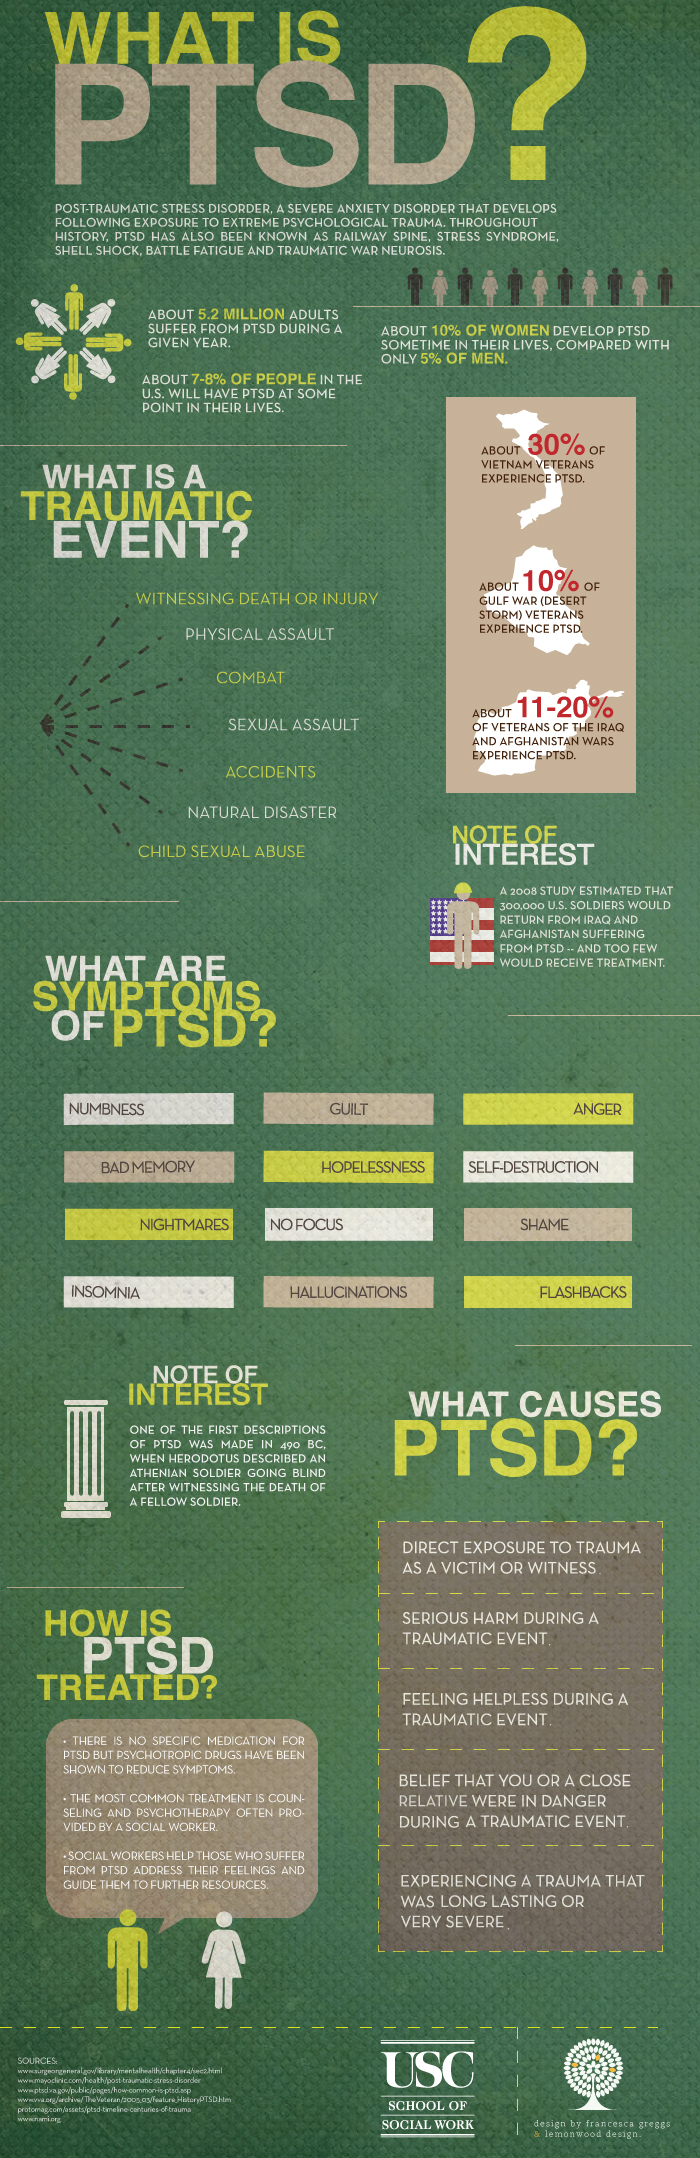 Post-Traumatic-Stress-Disorder-PTSD